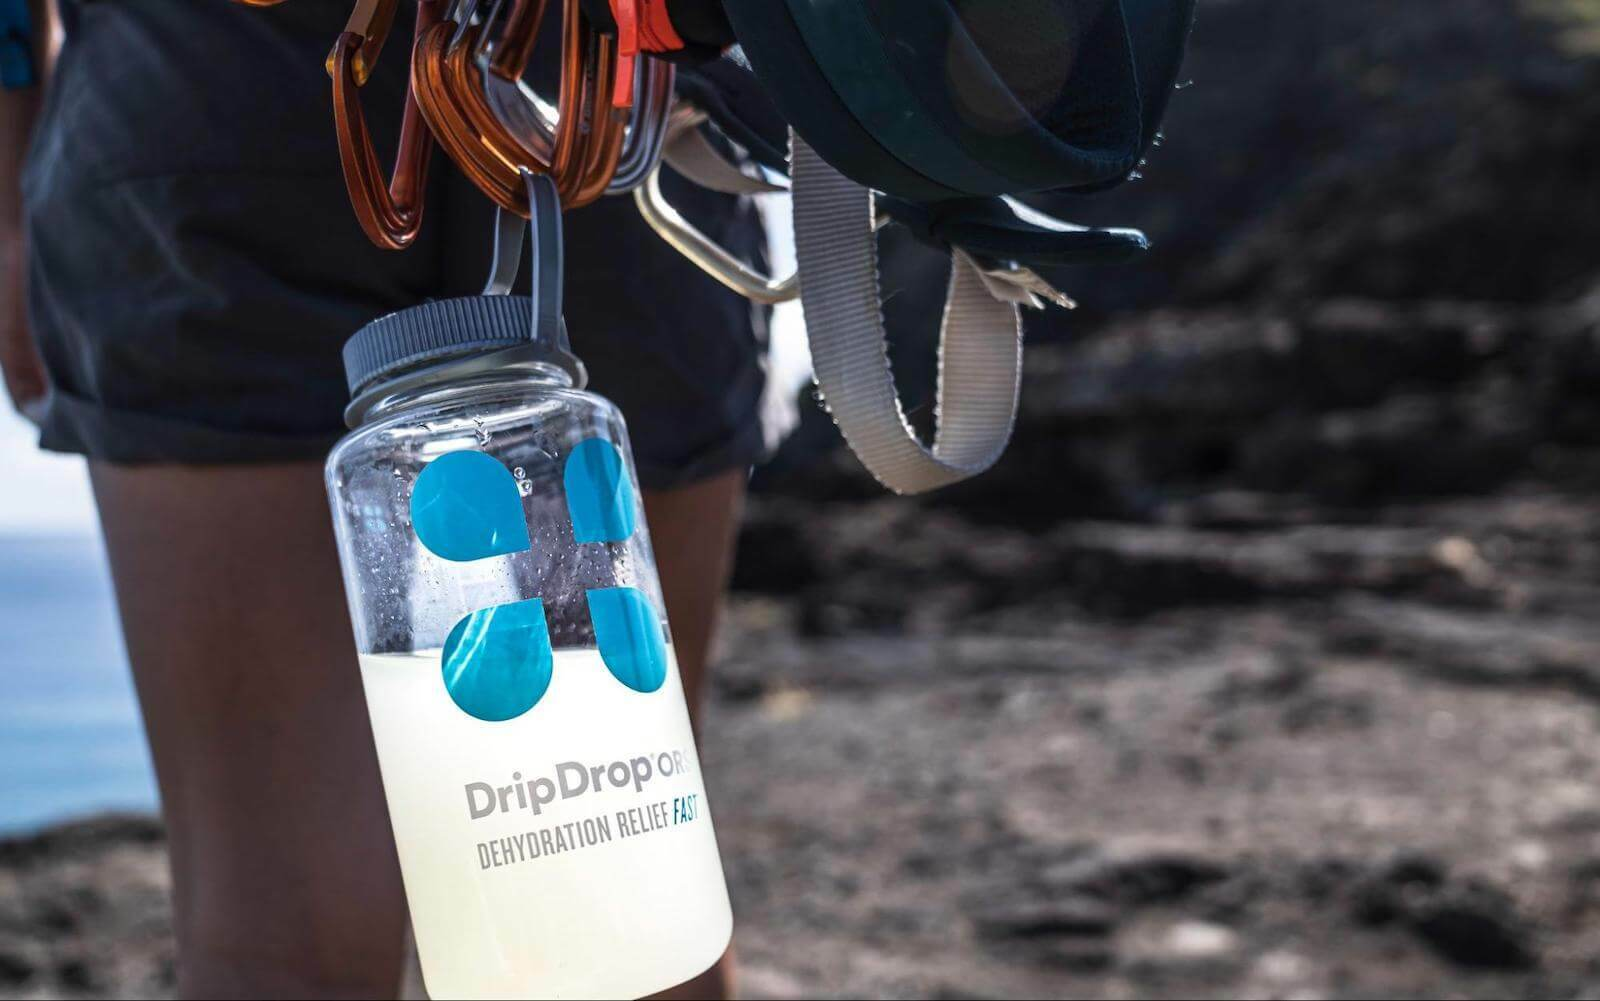 DripDrop tumbler hanging from a carabiner